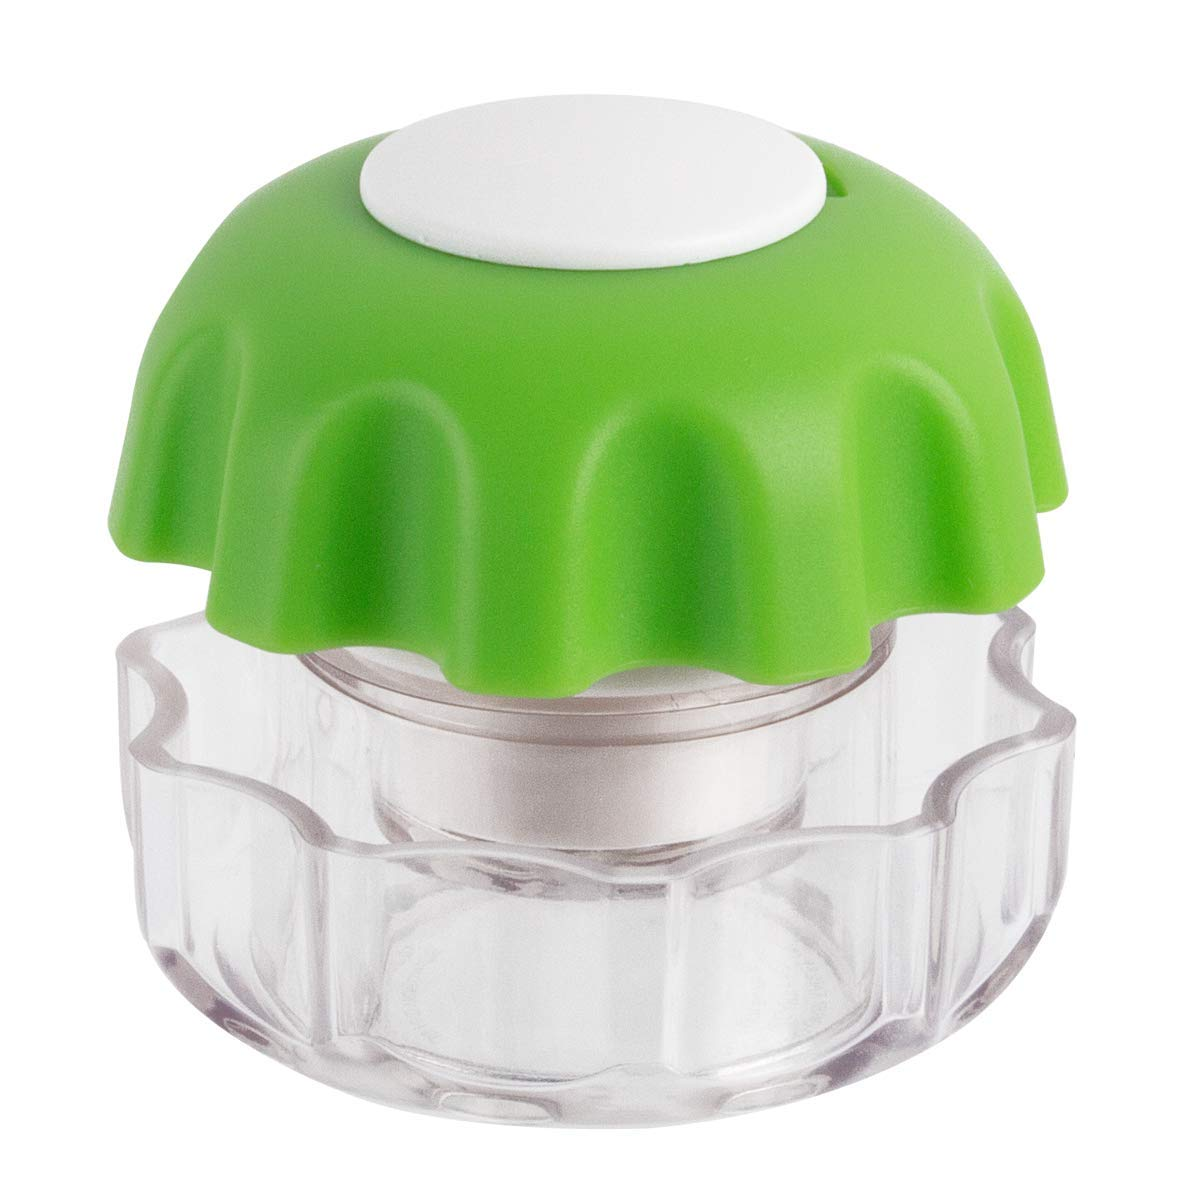 Ezy Dose Ezy Crush Pill Crusher and Grinder | Storage Compartment | Crushes Pills, Vitamins, Tablets | Assorted Colors